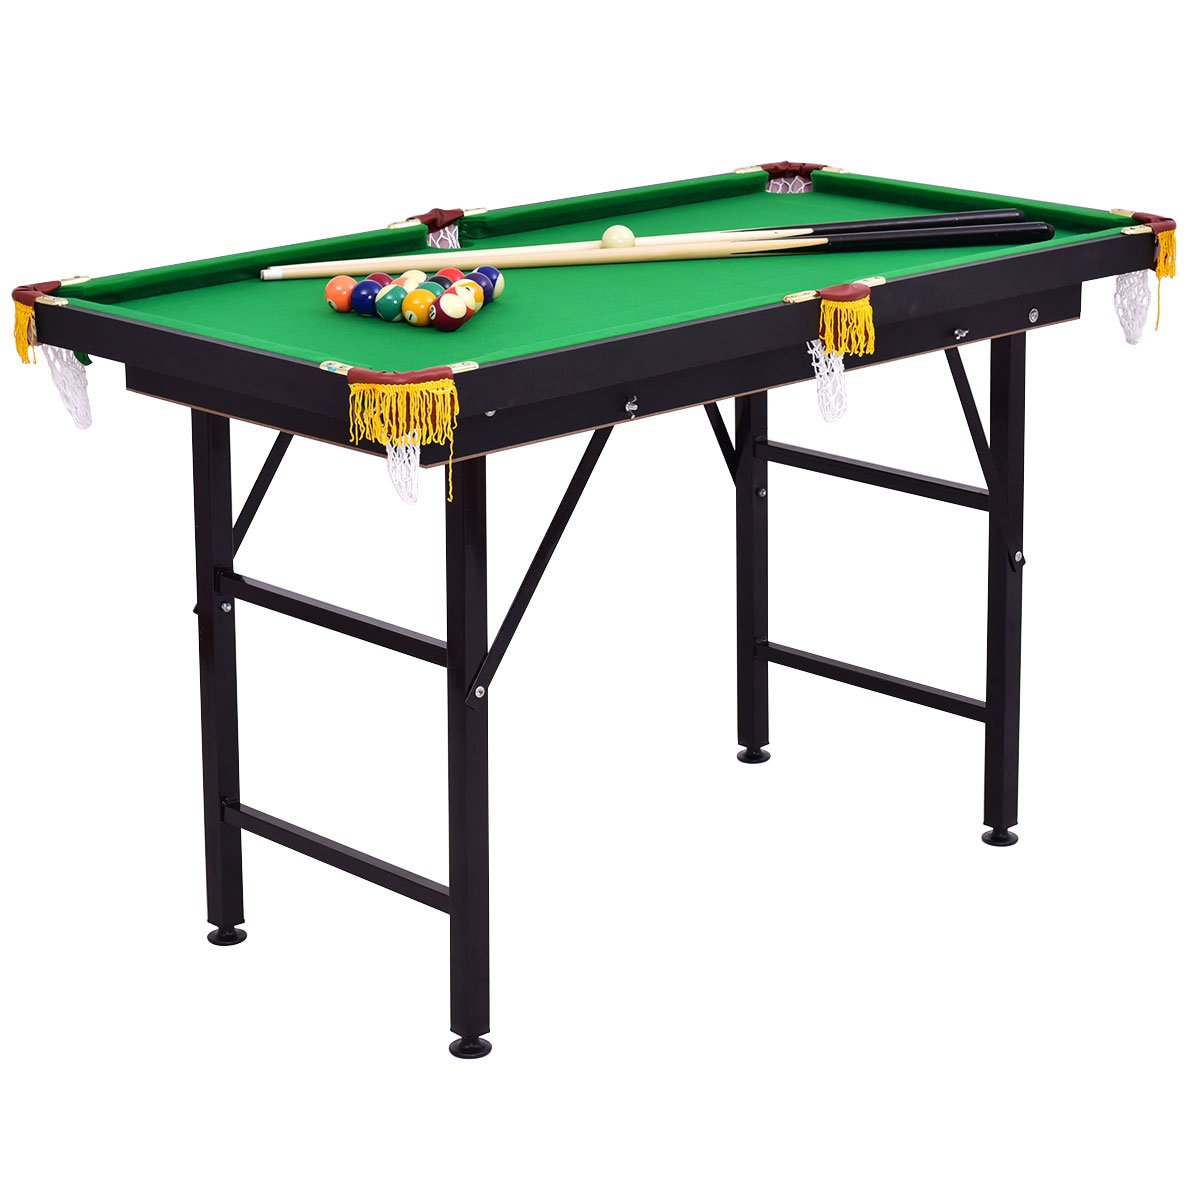 ool Game Table Includes Cues